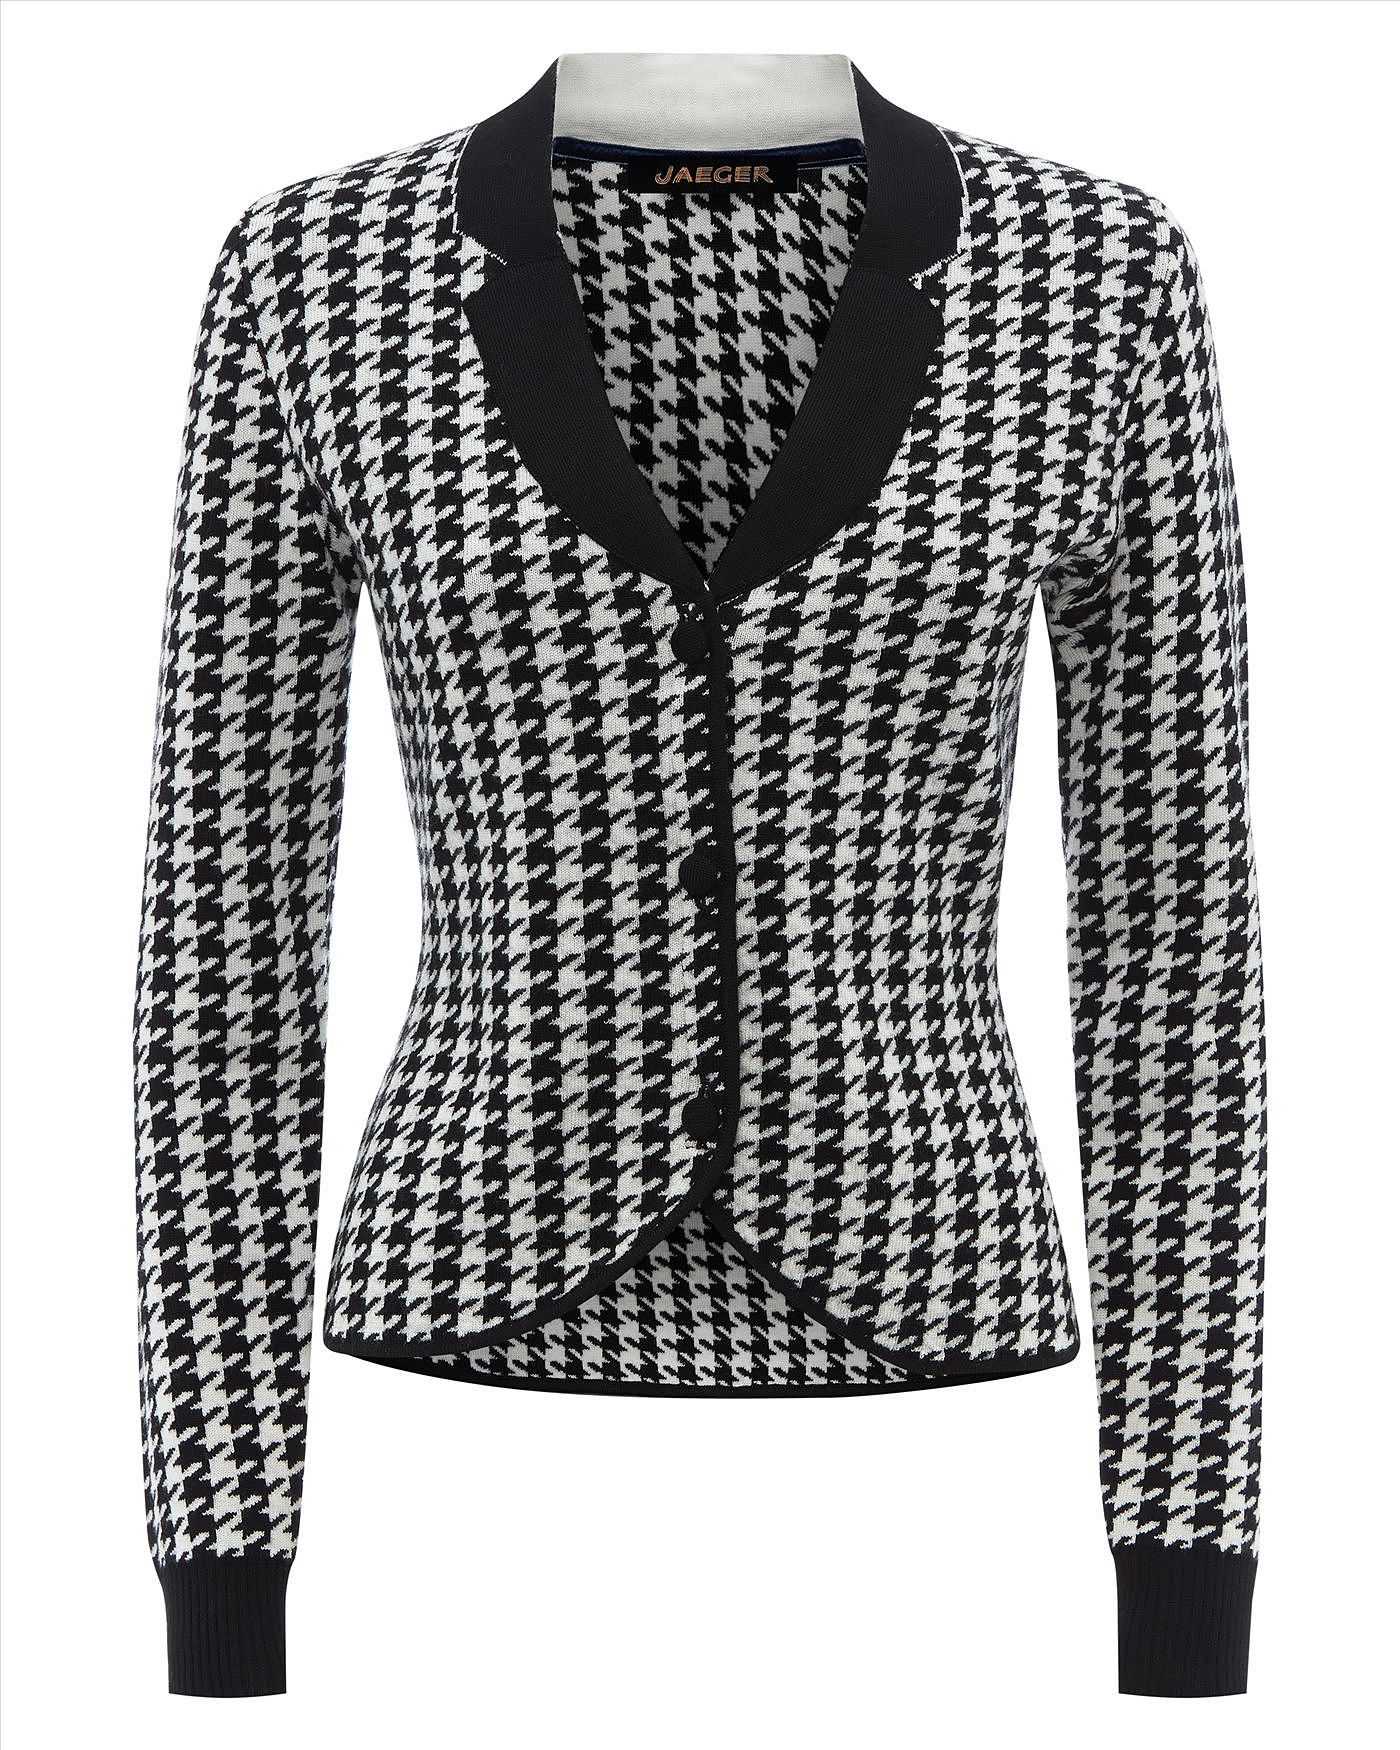 Womens black and white jacket from Jaeger - £175 at ClothingByColour.com